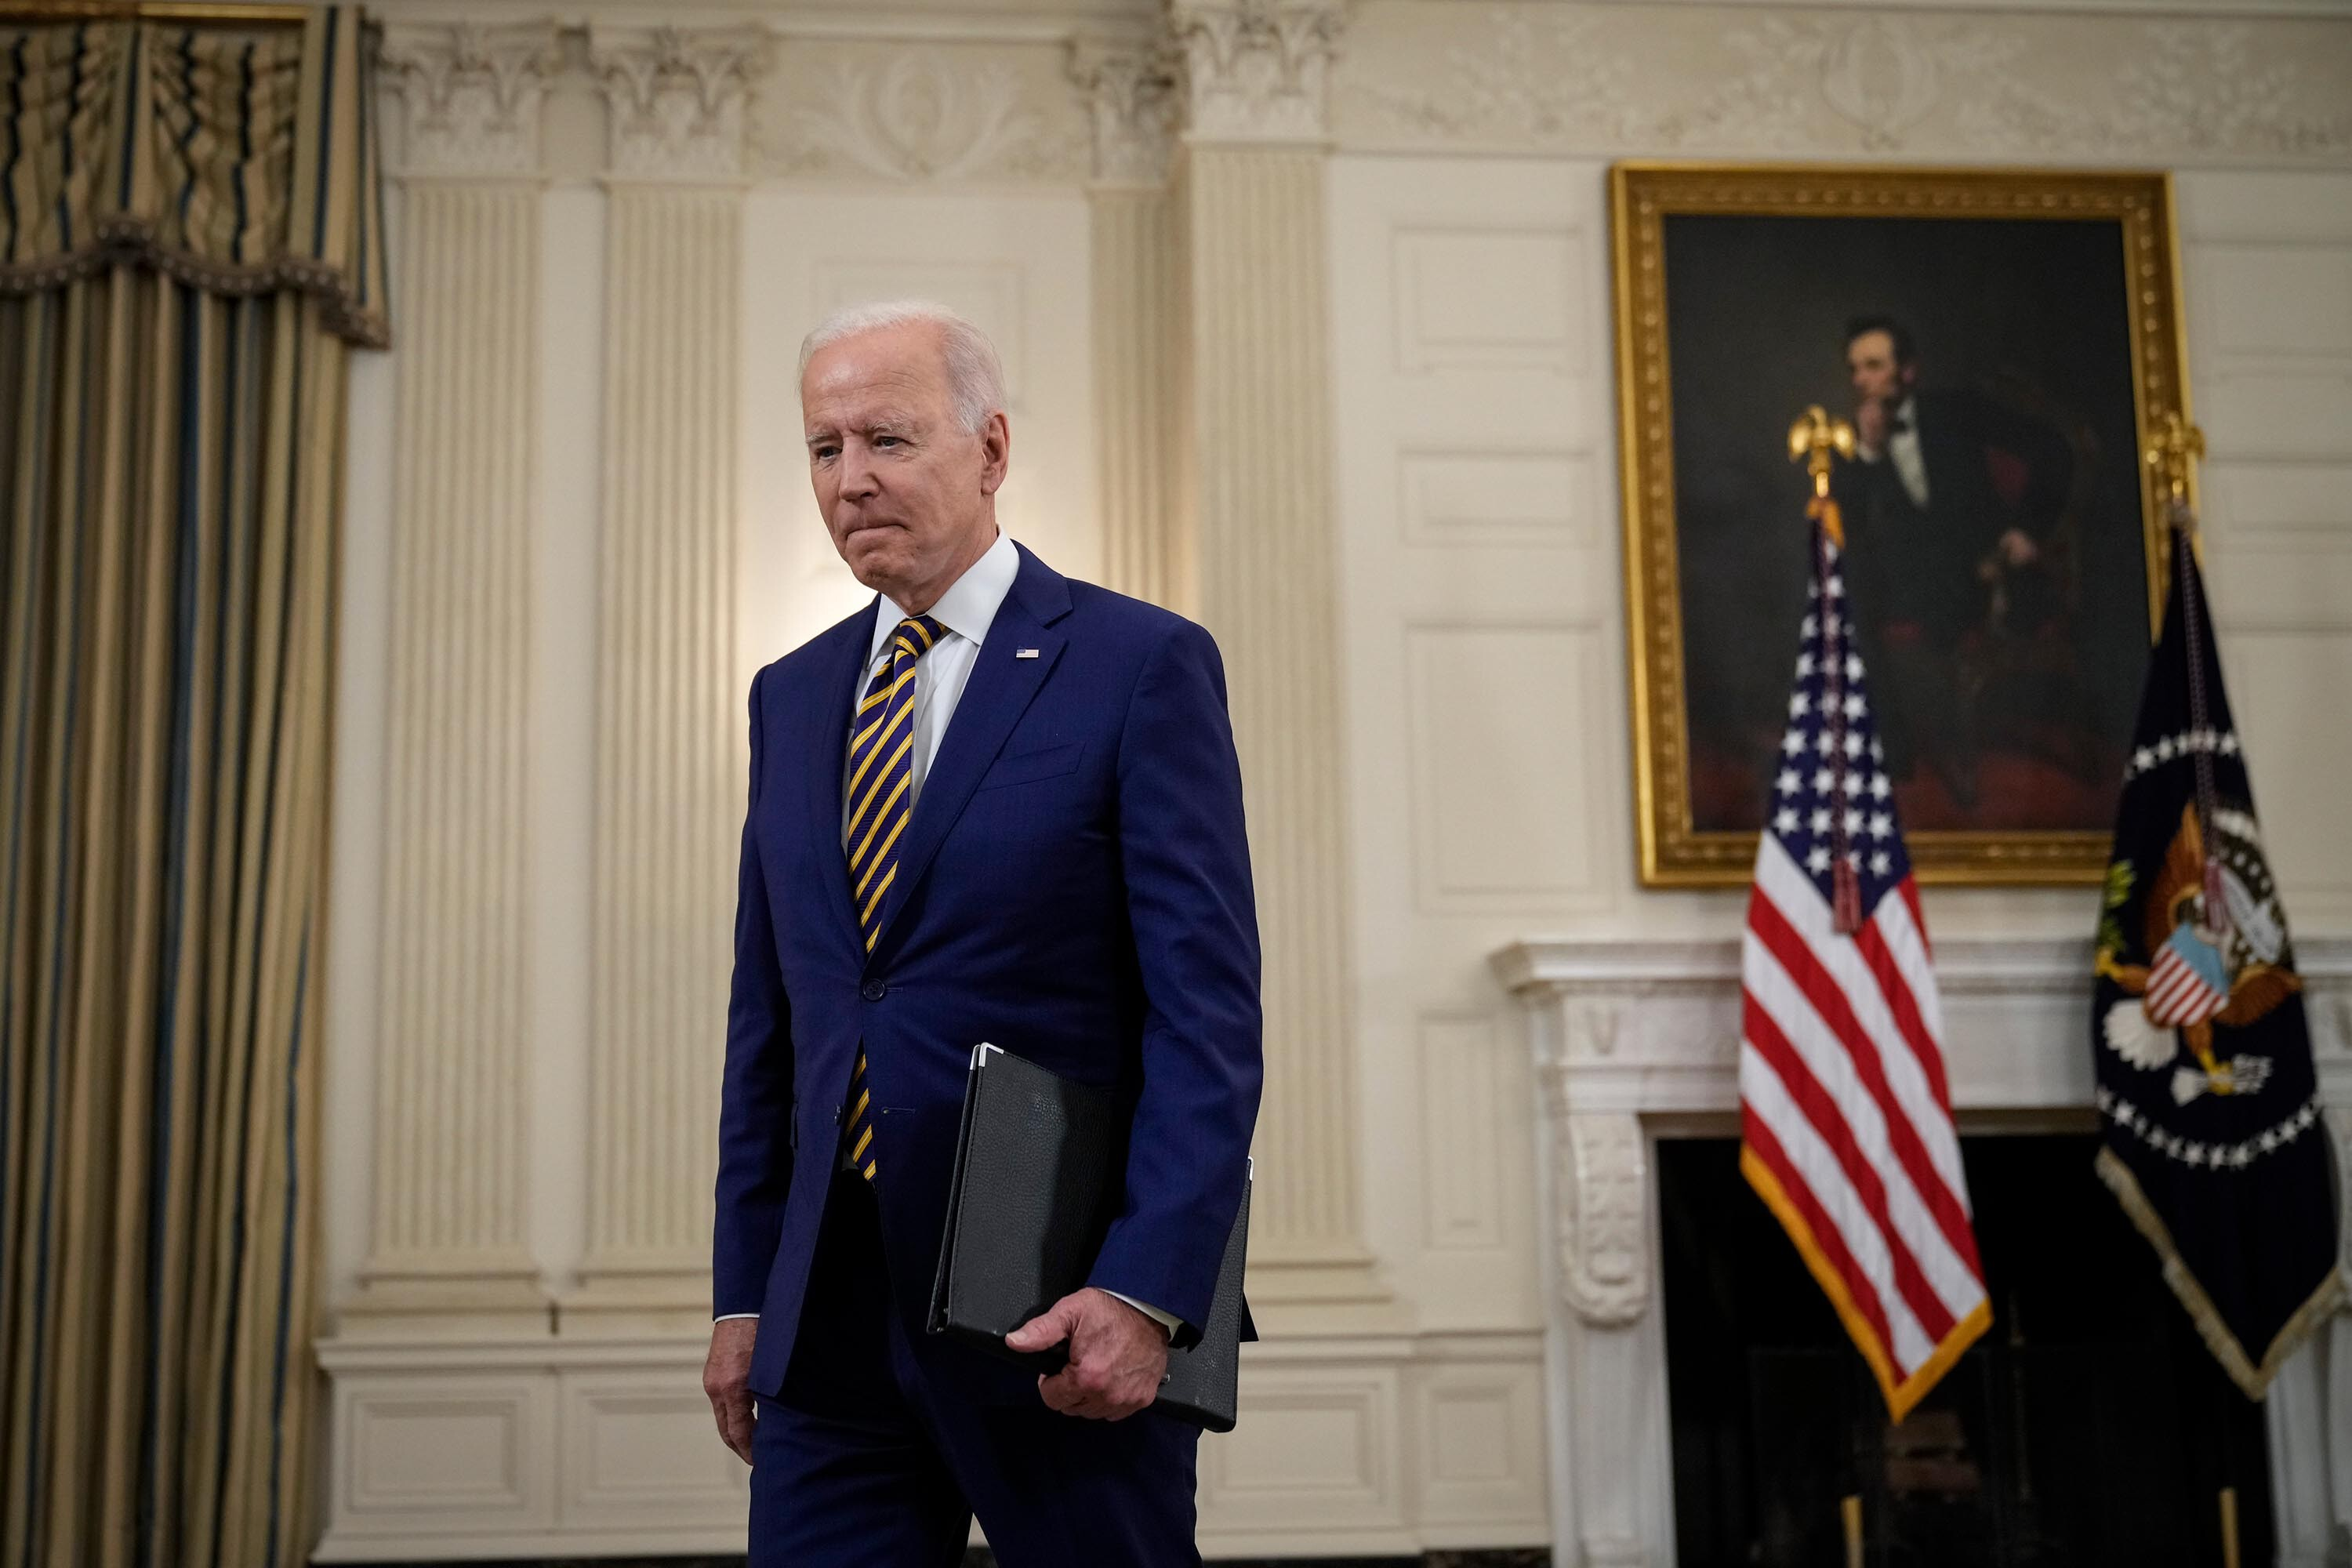 Biden promises answers on European travel ban 'in the next several days'